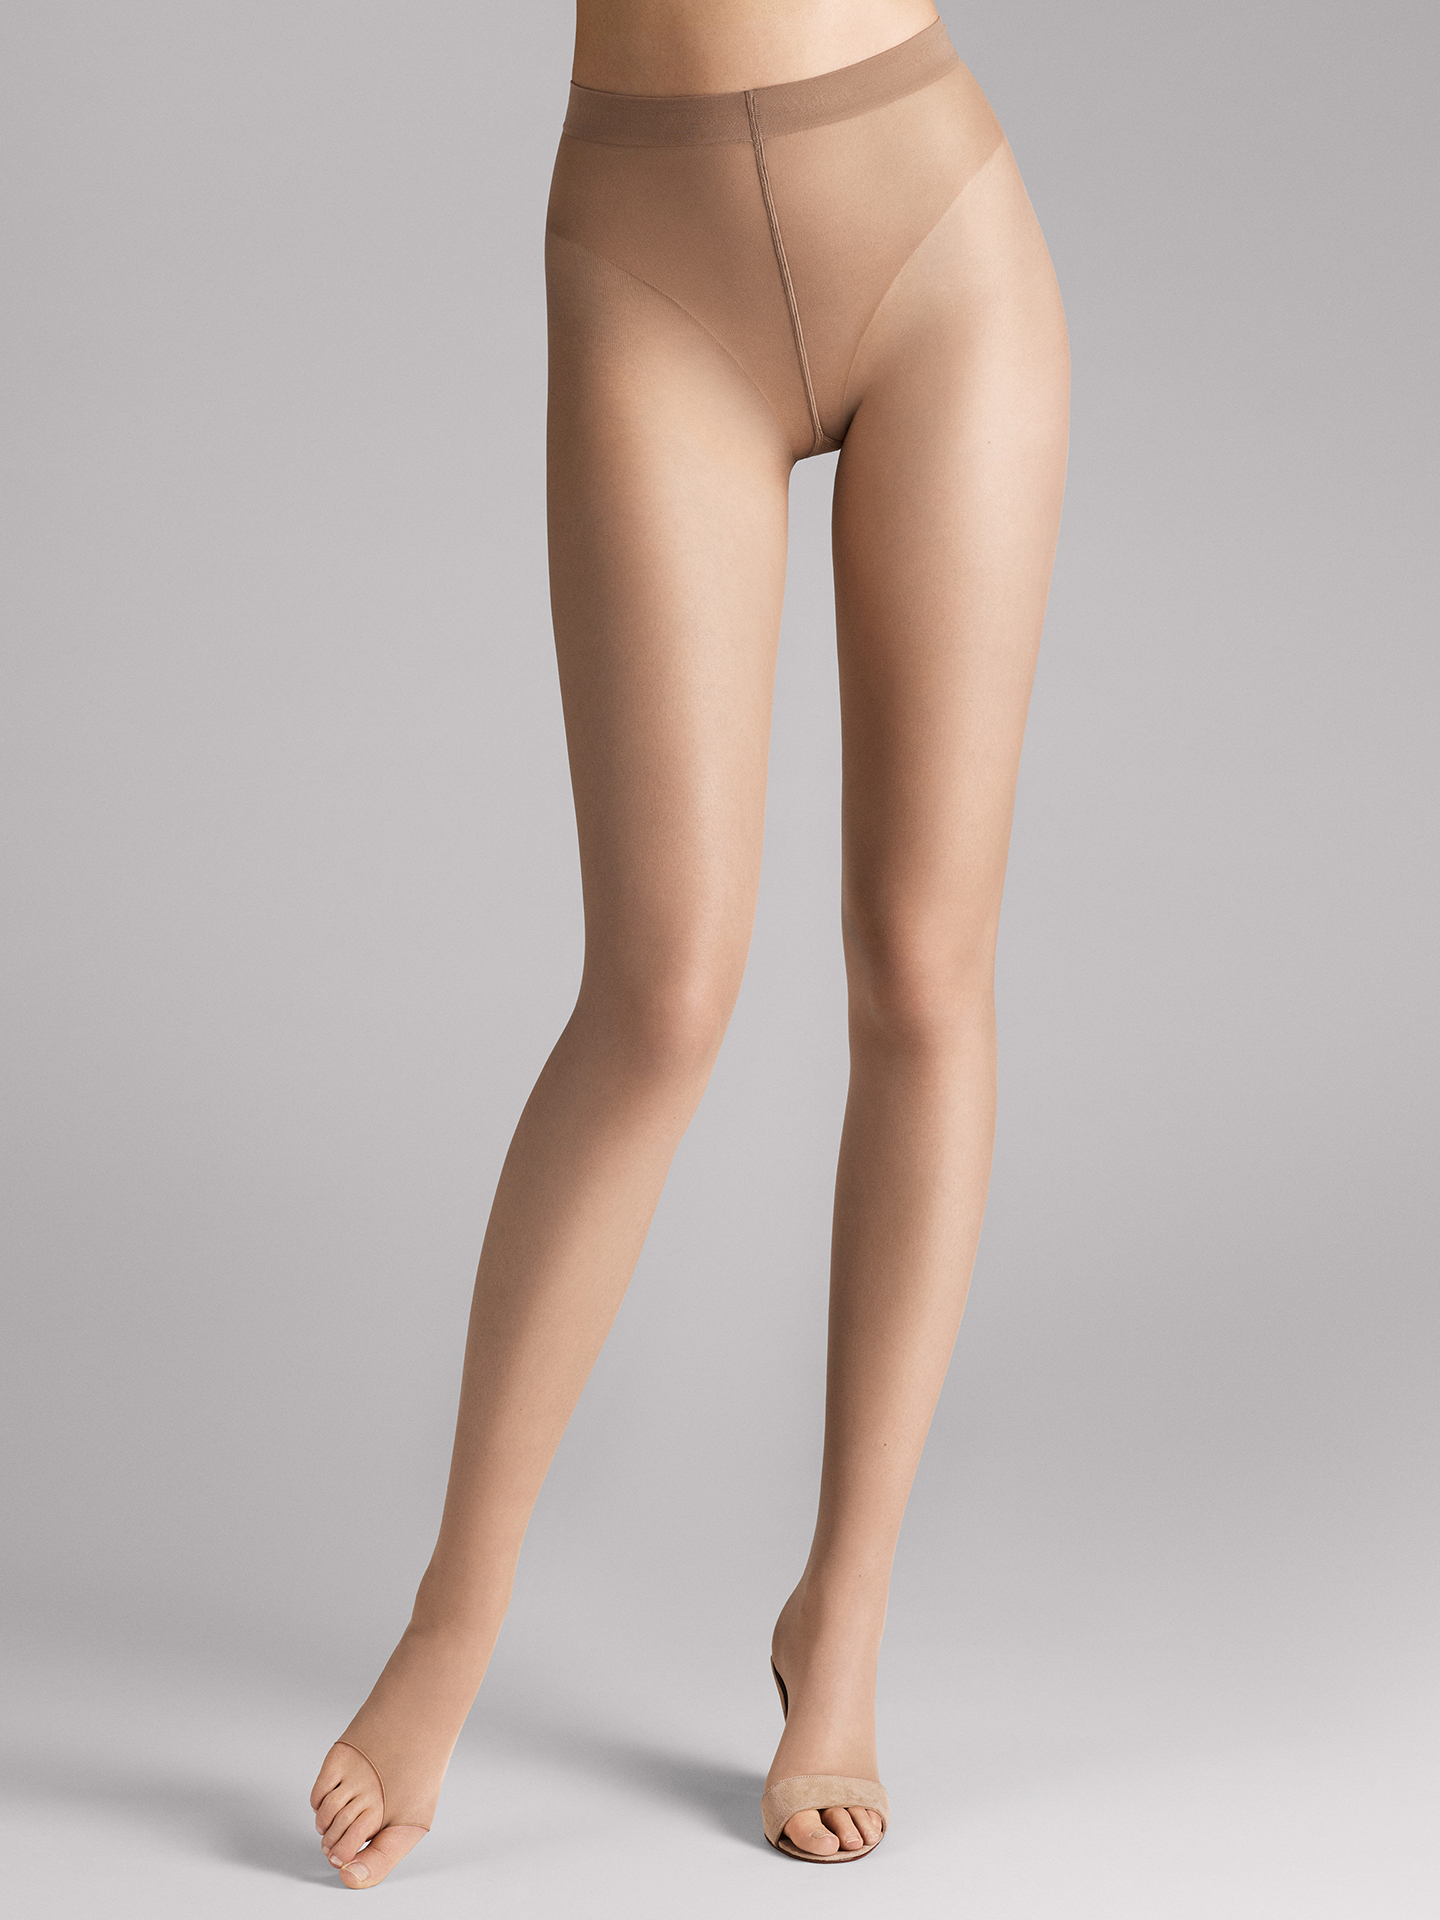 Wolford Apparel & Accessories > Clothing > Collant Luxe 9 Toeless Tights - 4273 - M